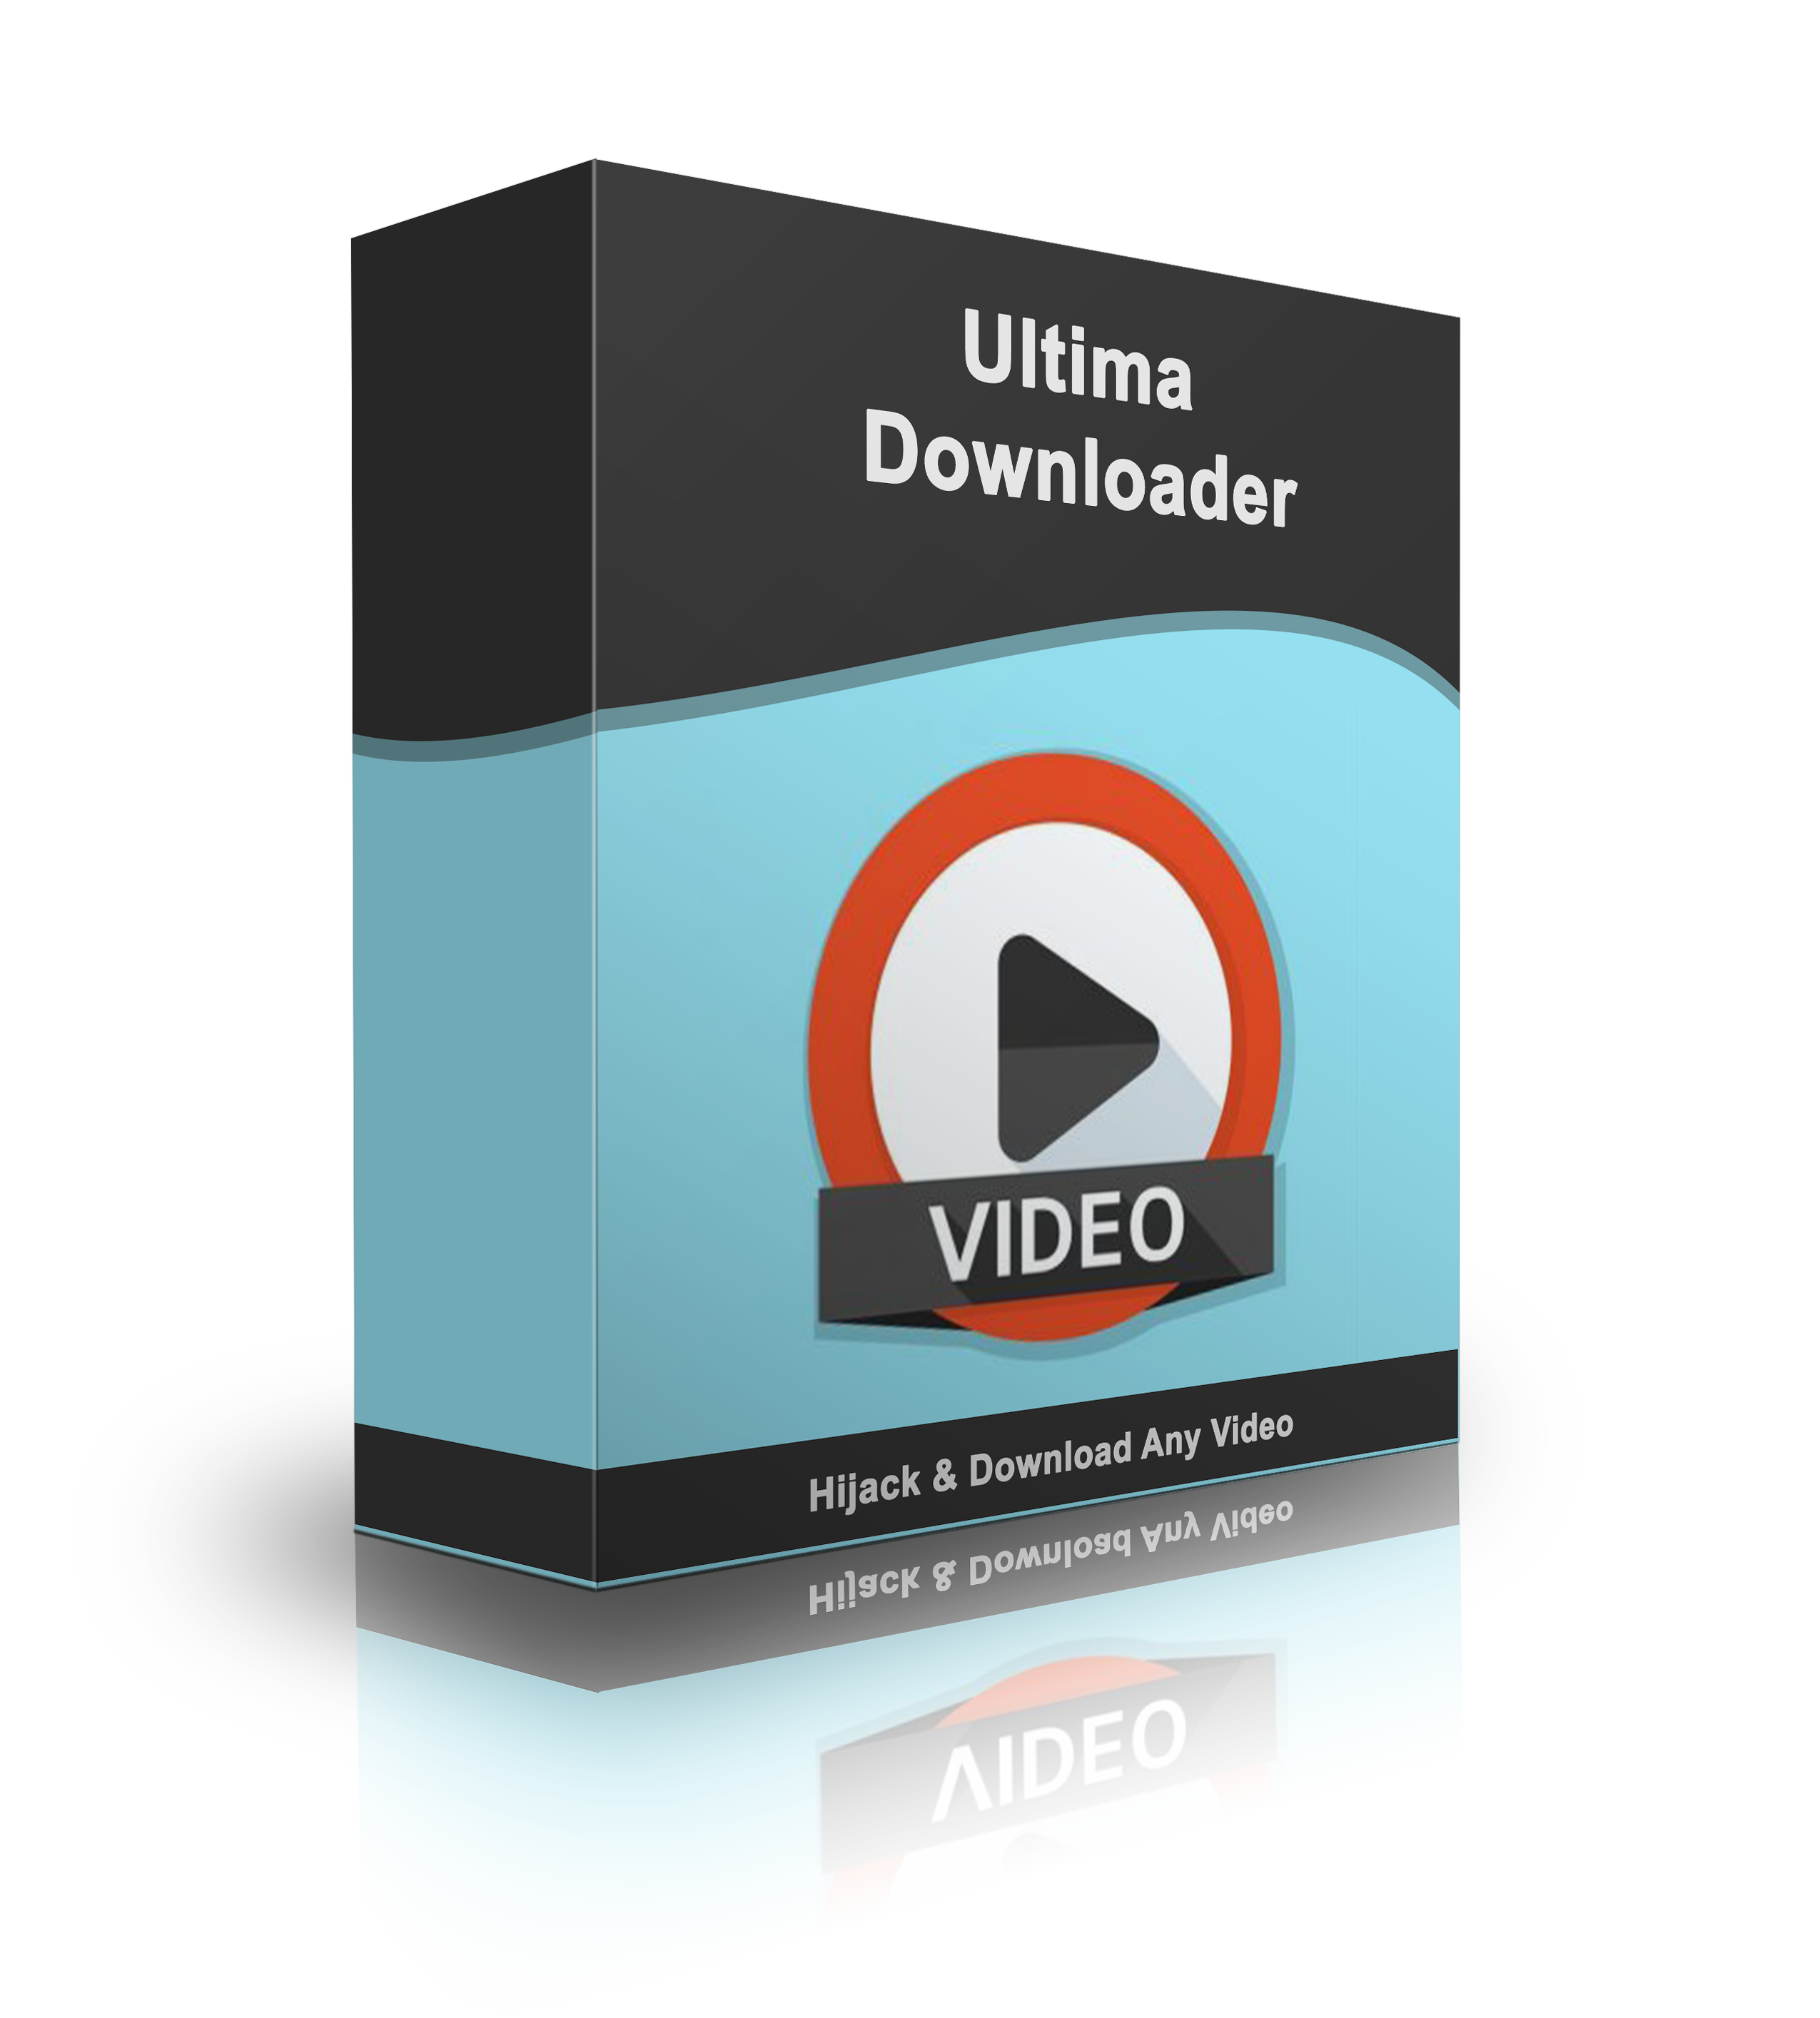 Ultima downloader